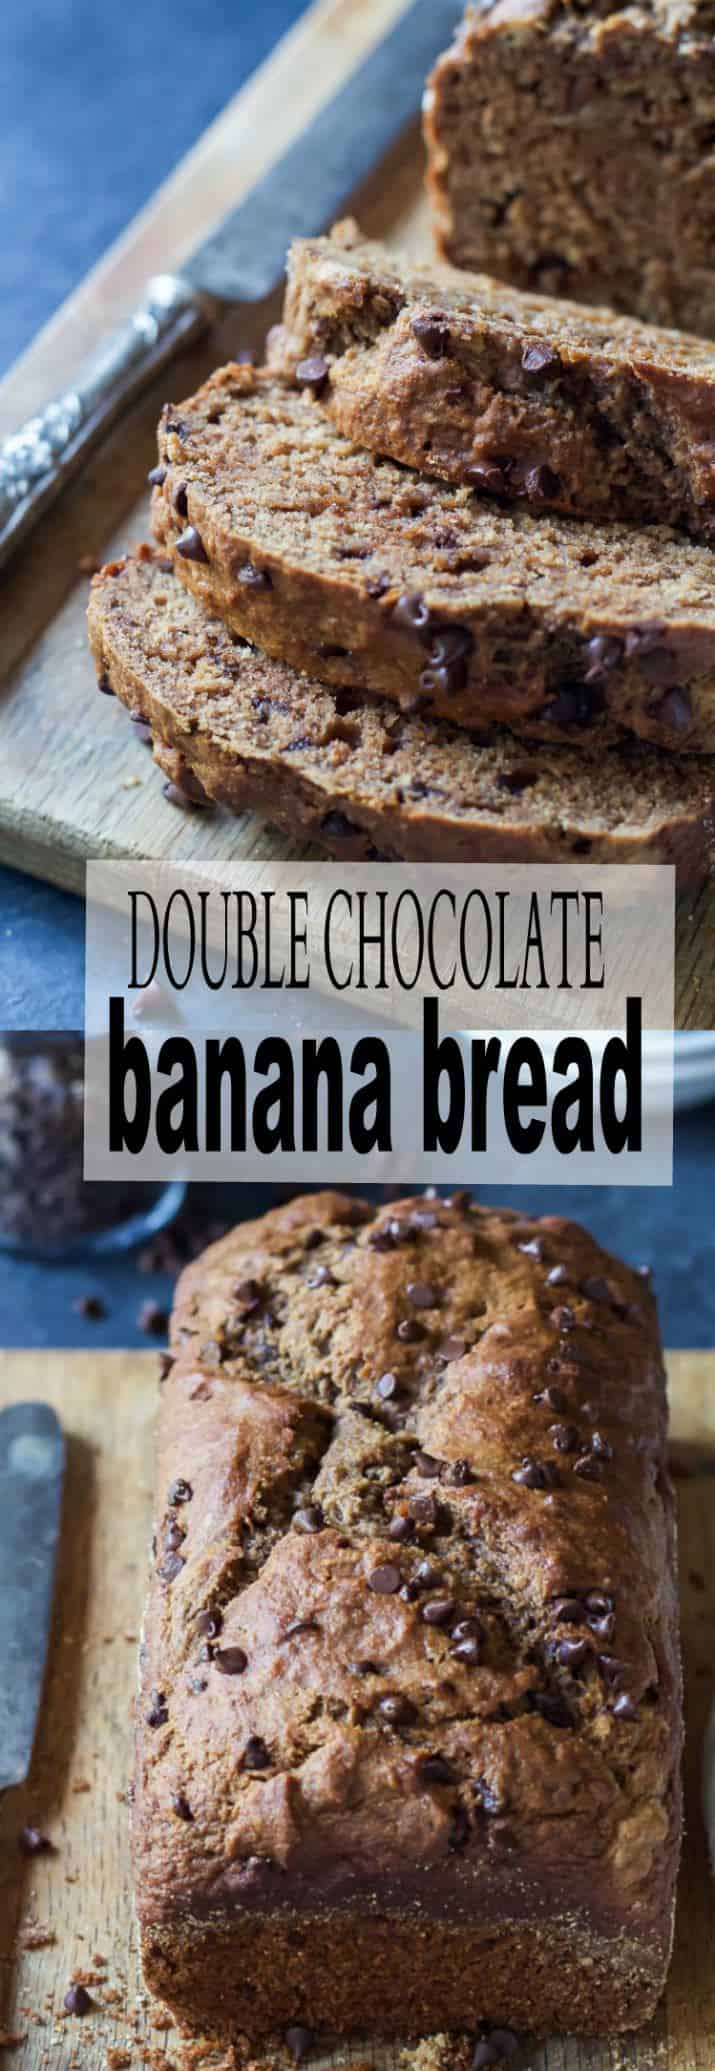 Who doesn't like Banana Bread? What about Double Chocolate Banana Bread? This recipe is incredibly moist, filled with chocolate flavor and only 196 calories a slice. Make it! | joyfulhealthyeats.com #recipes